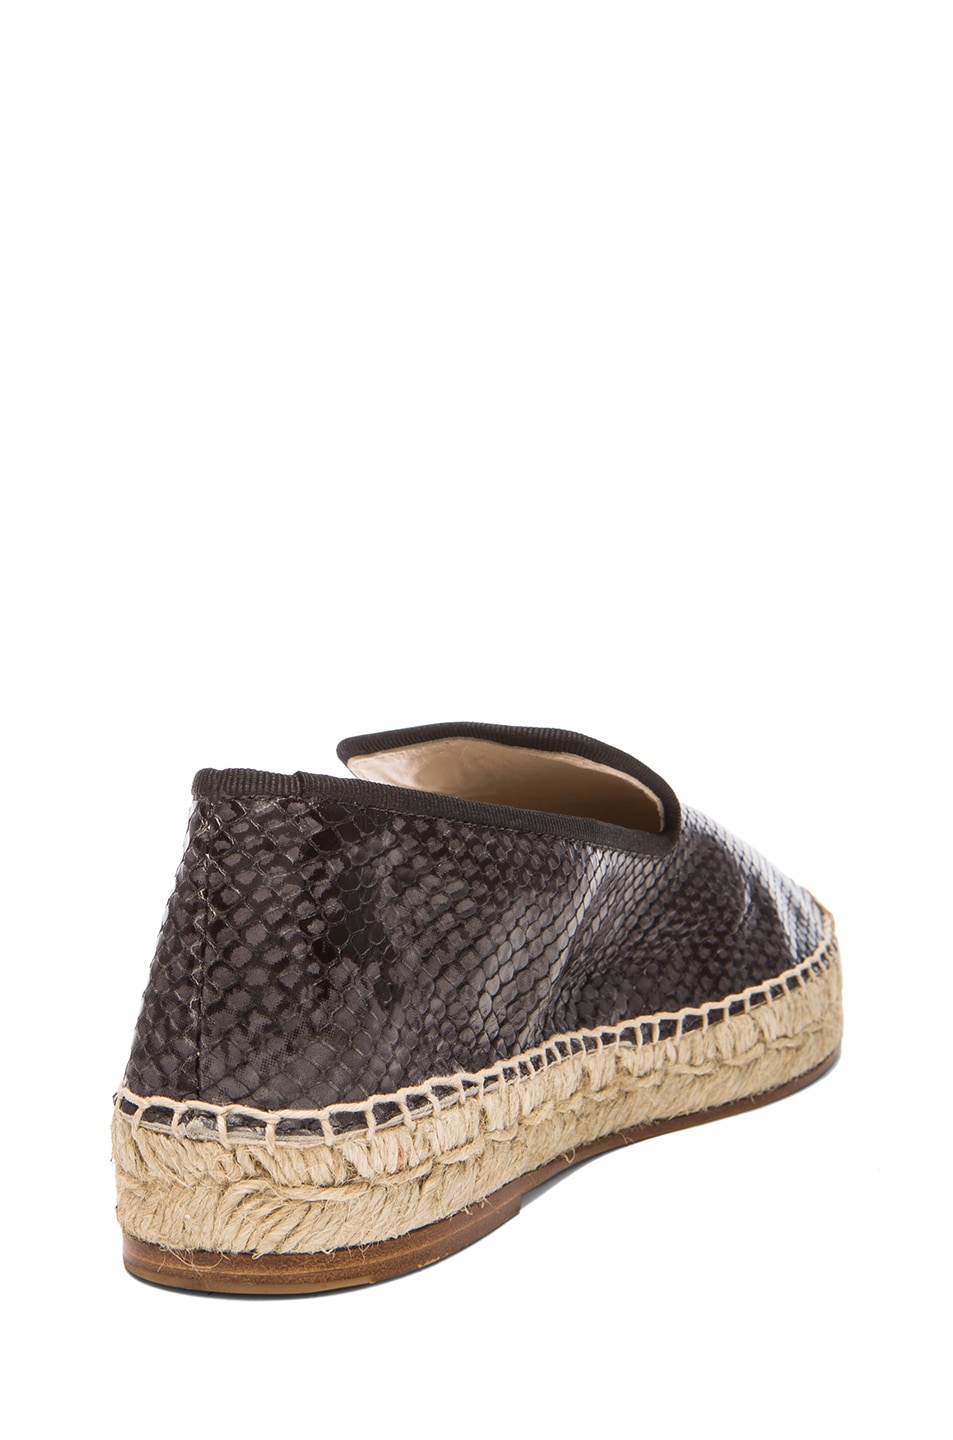 Image 3 of elysewalker los angeles Python Printed Leather Espadrilles in Grey